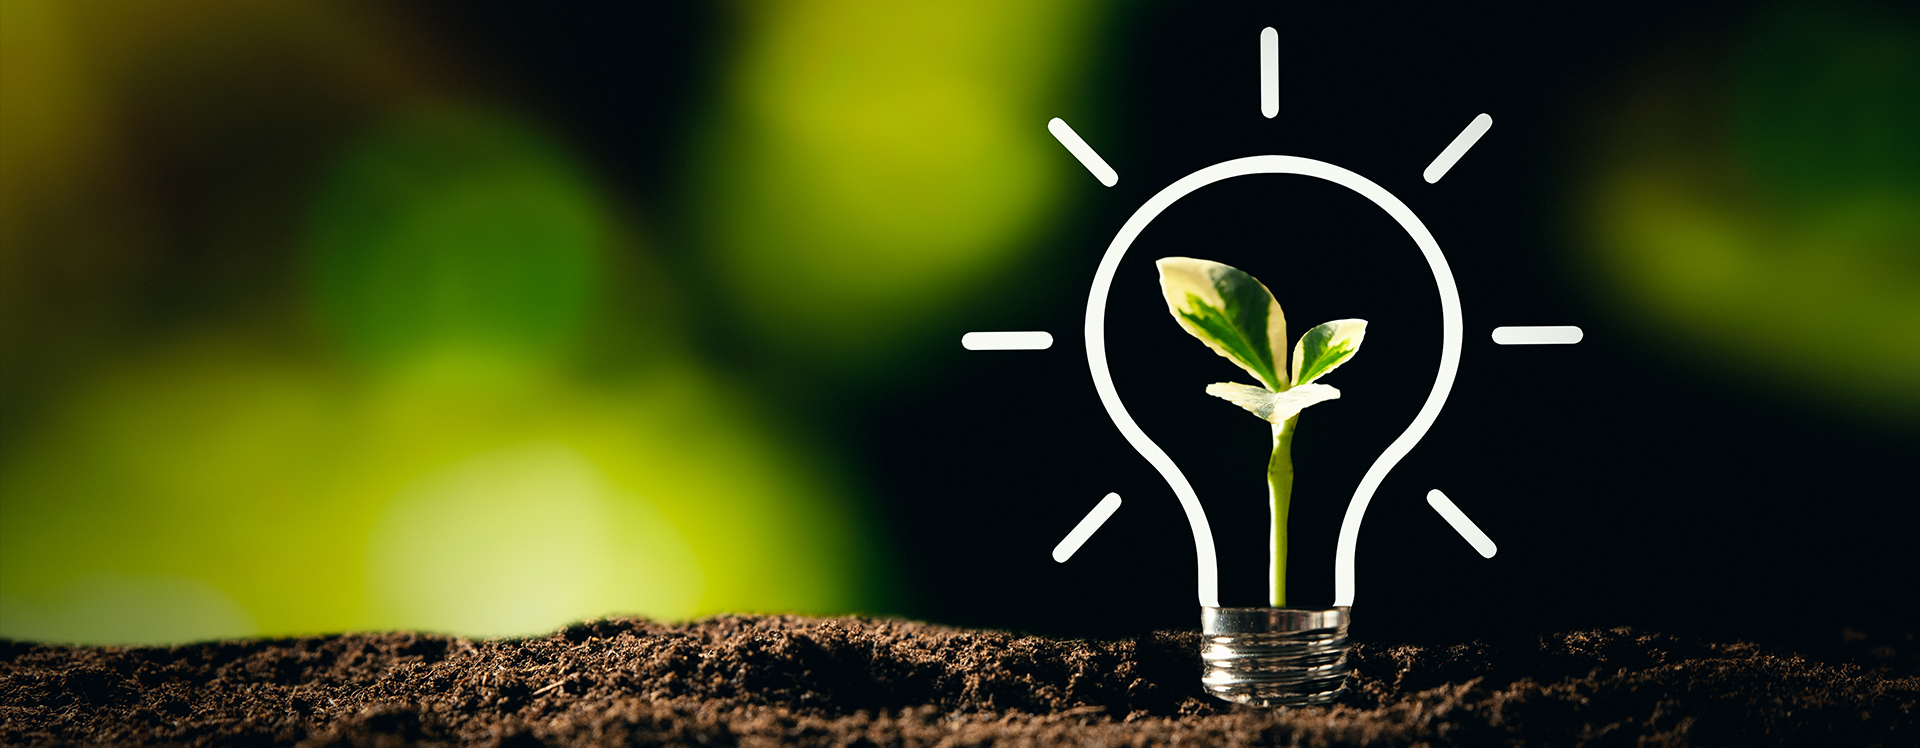 Sustainable Management Resources illustration of a sprouted plant growing within a lightbulb